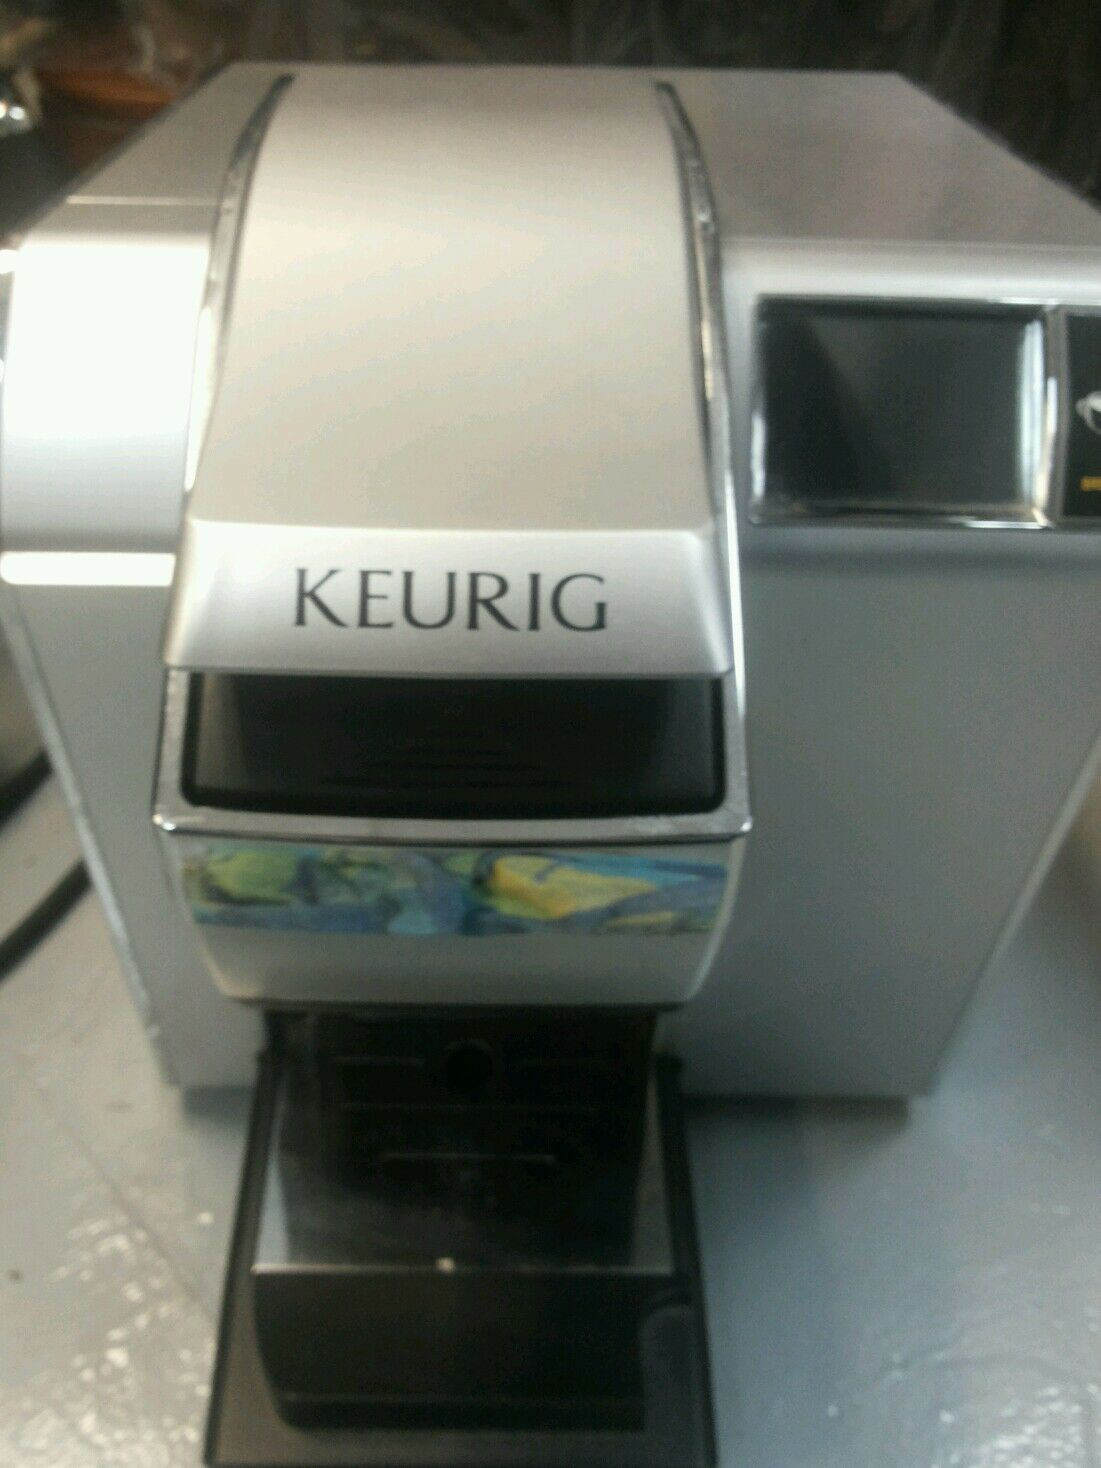 Keurig Vue V1255 Professional Brewing System with MyBrew Technology -Touchscreen